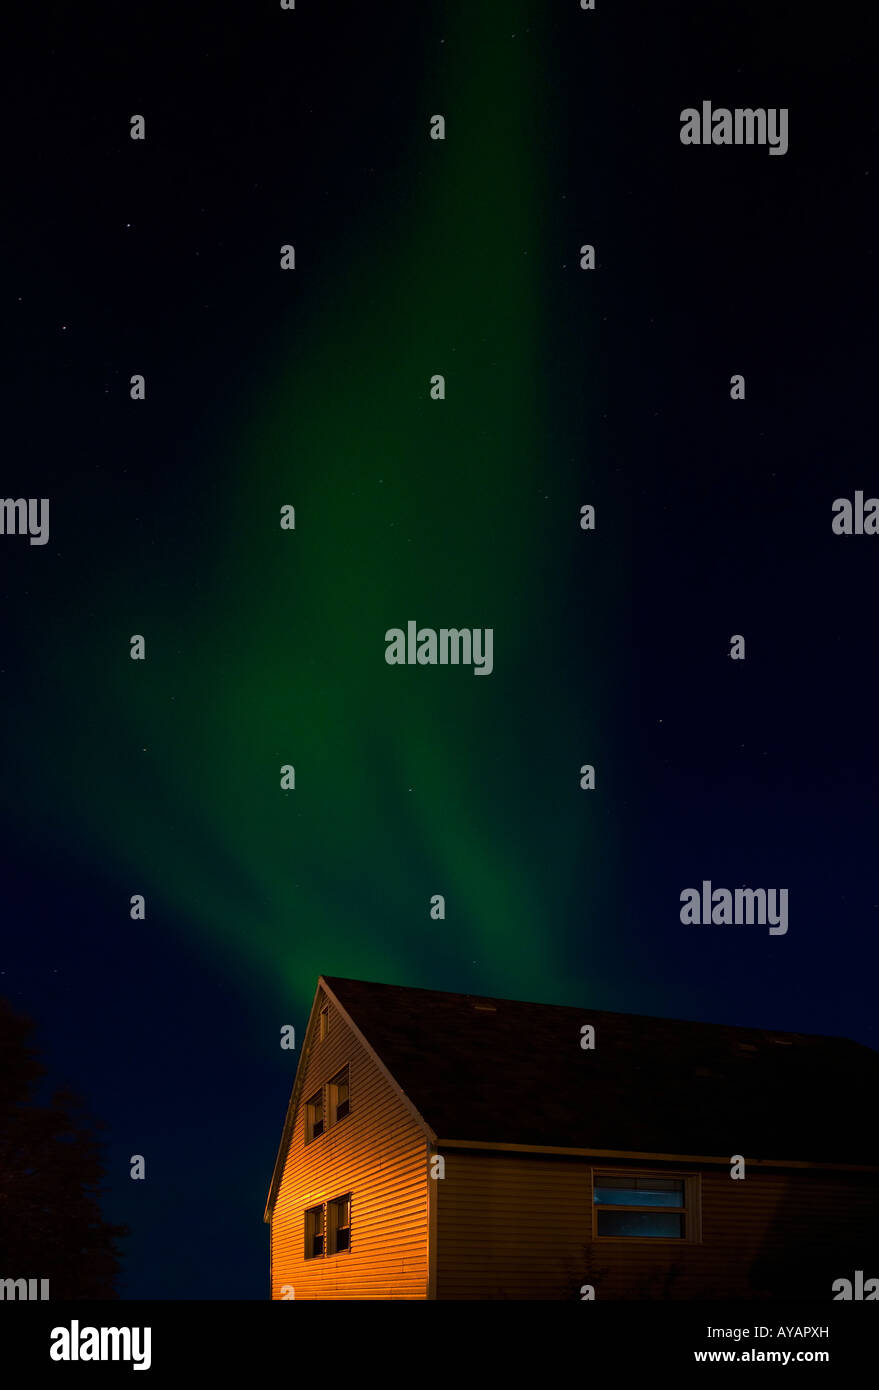 Northern lights and a house, Inuvik, Northwest Territories, Canada - Stock Image